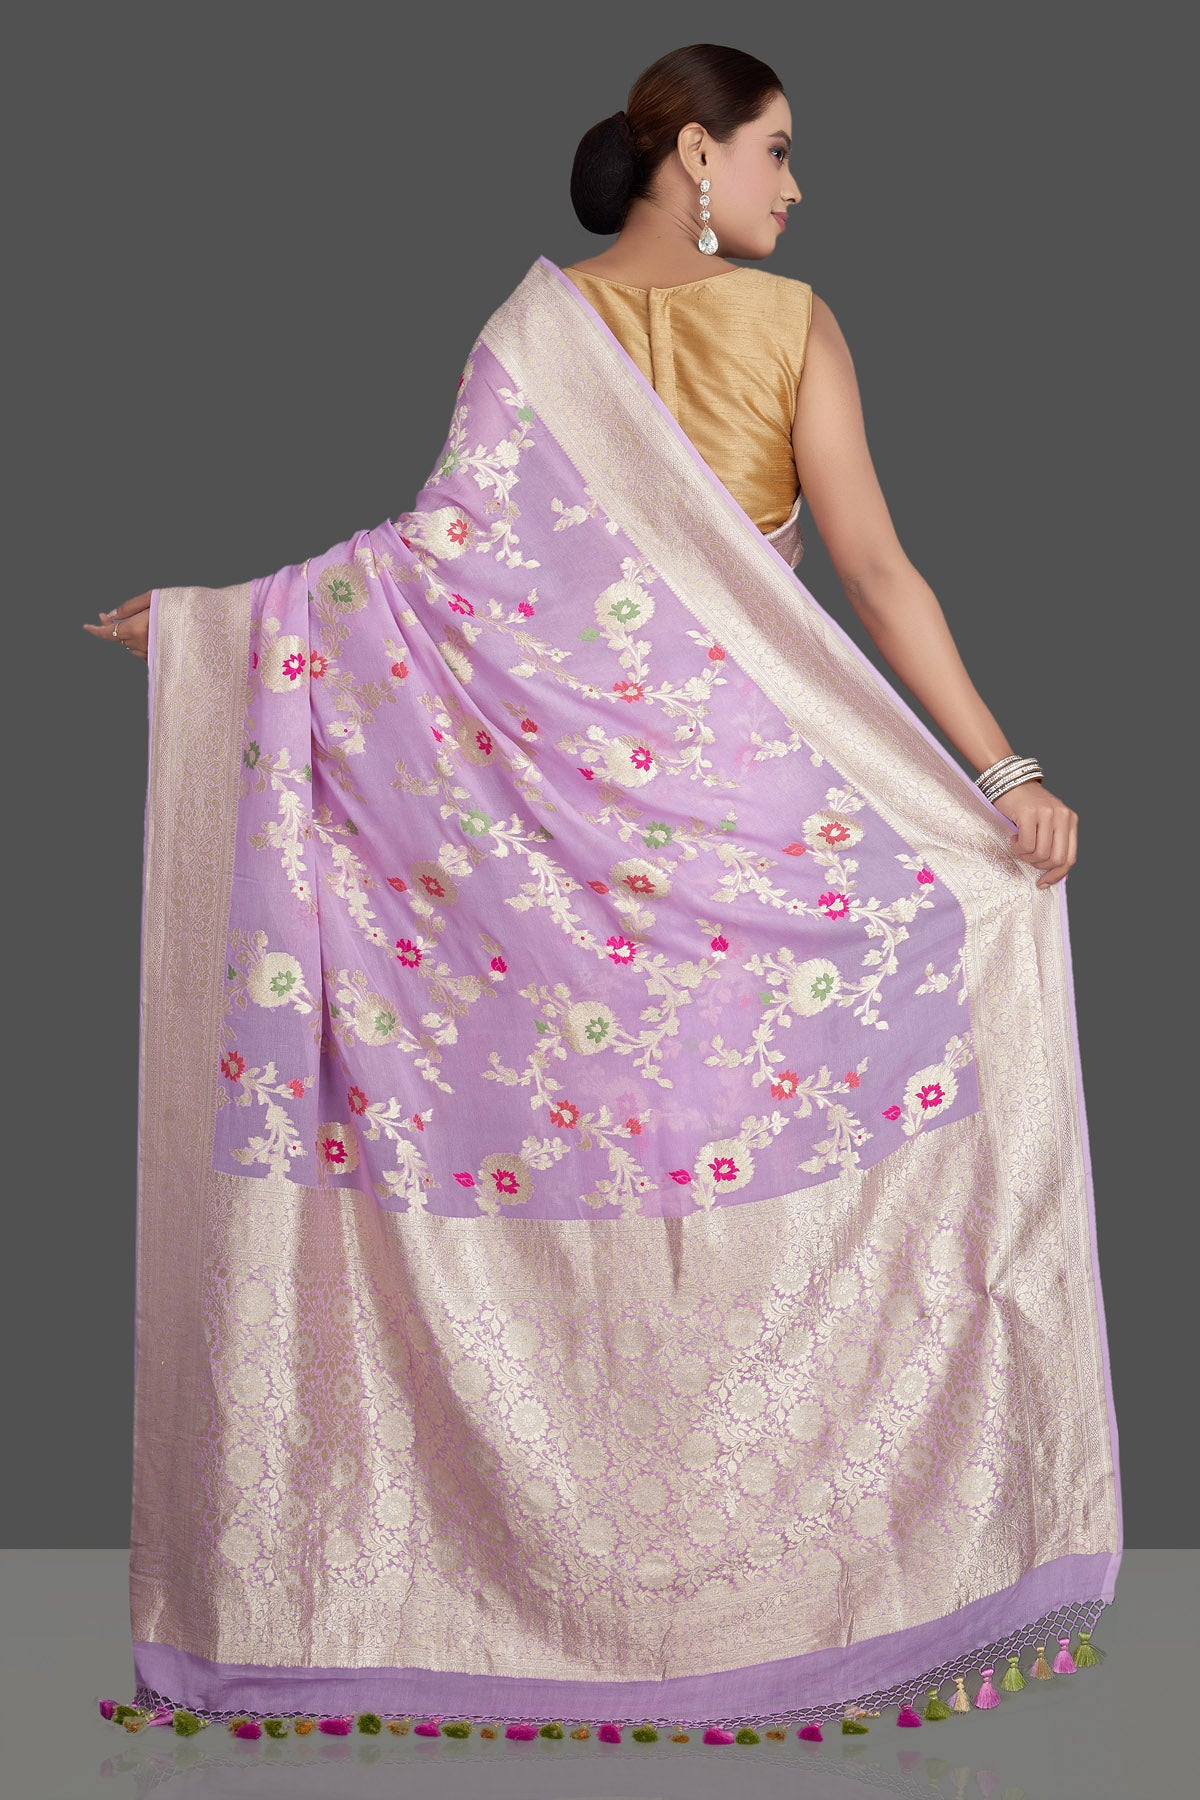 Shop beautiful lavender georgette sari online in USA with silver zari floral jaal. Make an impeccable ethnic fashion statement on festive occasions with traditional Indian sarees, pure silk sarees, designer sarees, handwoven saris, Banarasi sarees from Pure Elegance Indian saree store in USA.-back